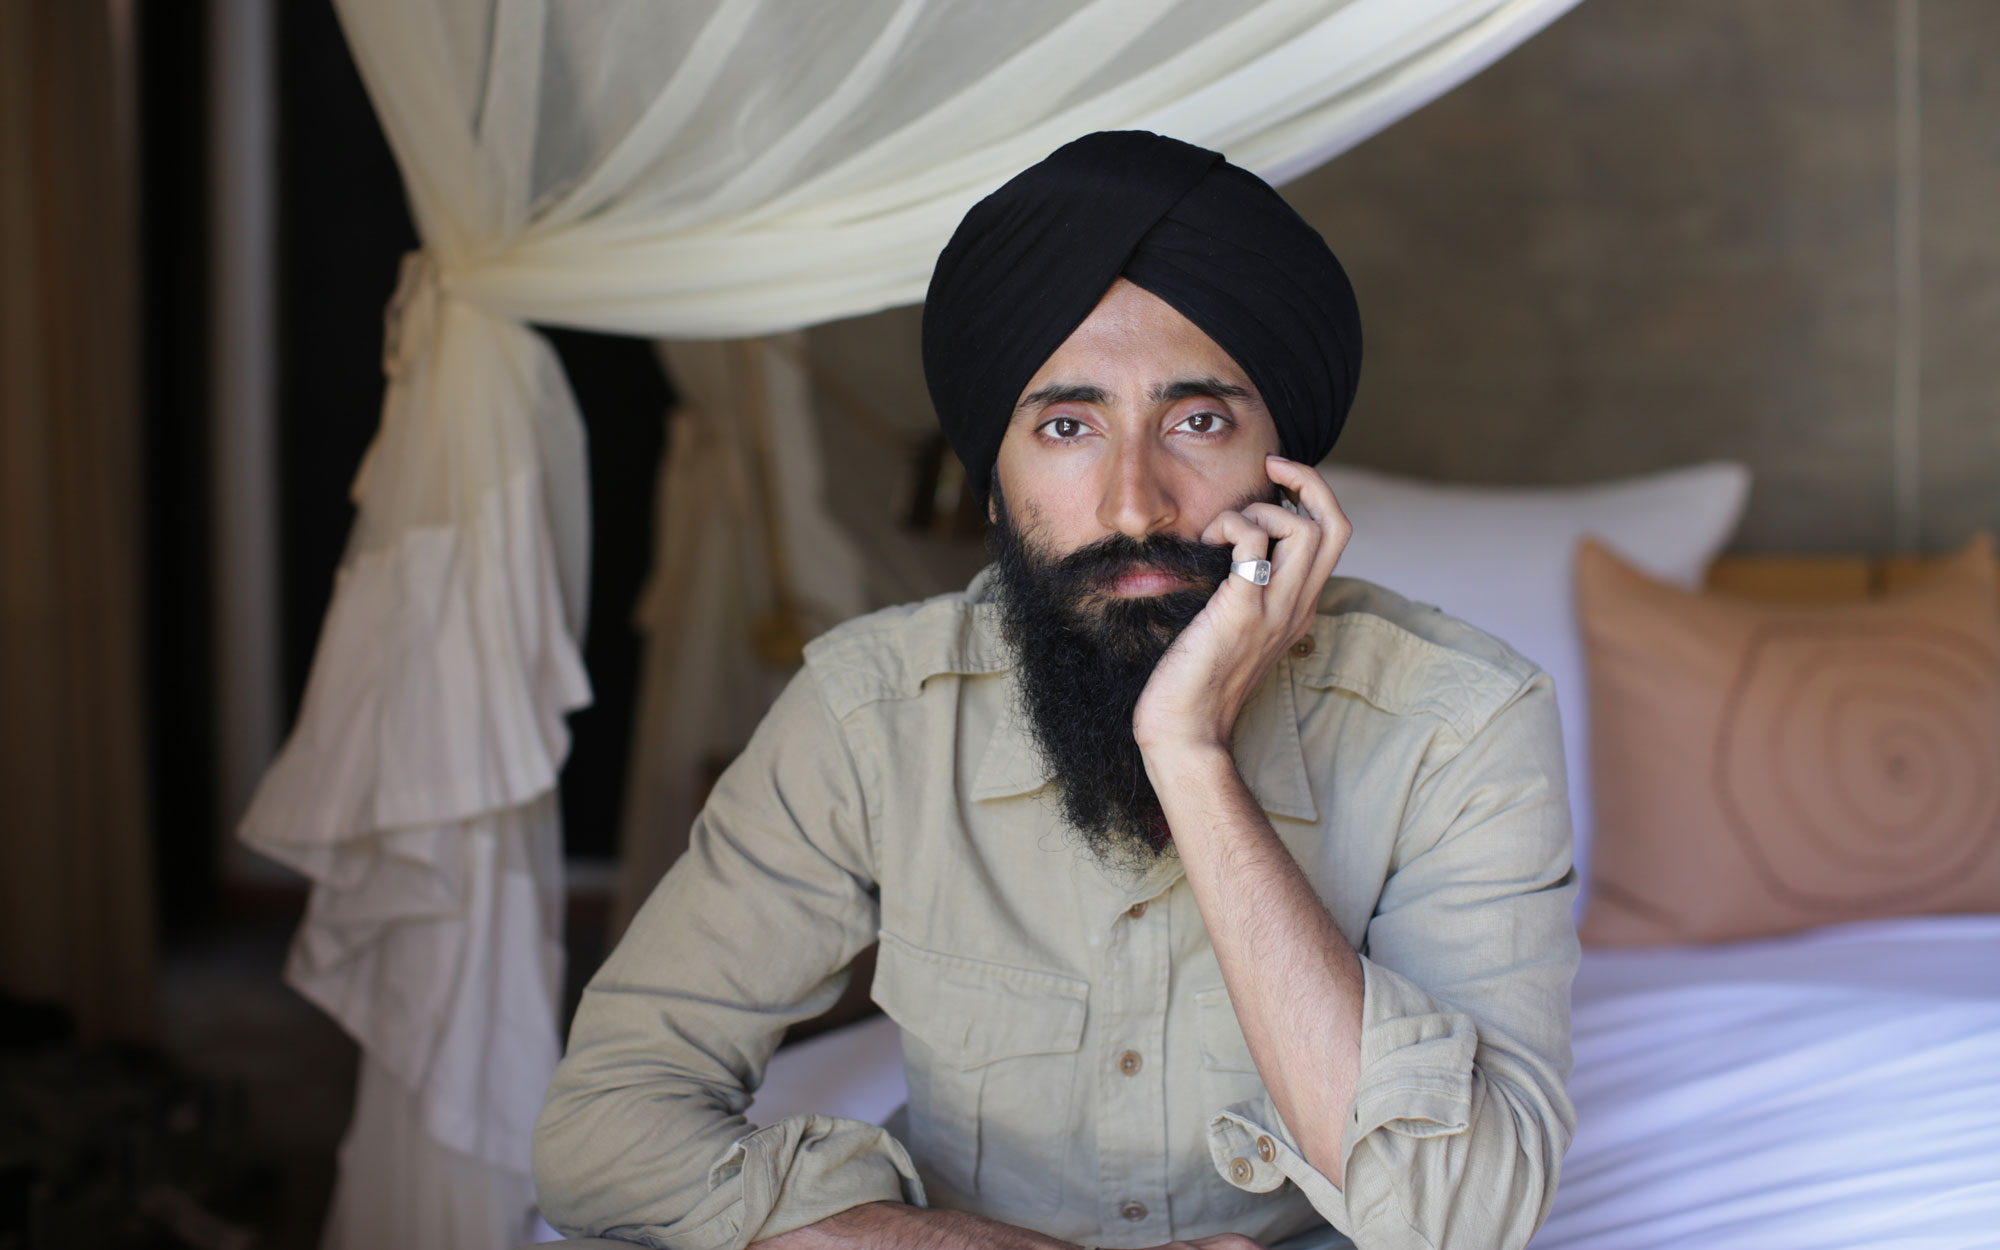 Sikh Actor Waris Ahluwalia Takes a Stand Against Airport Discrimination